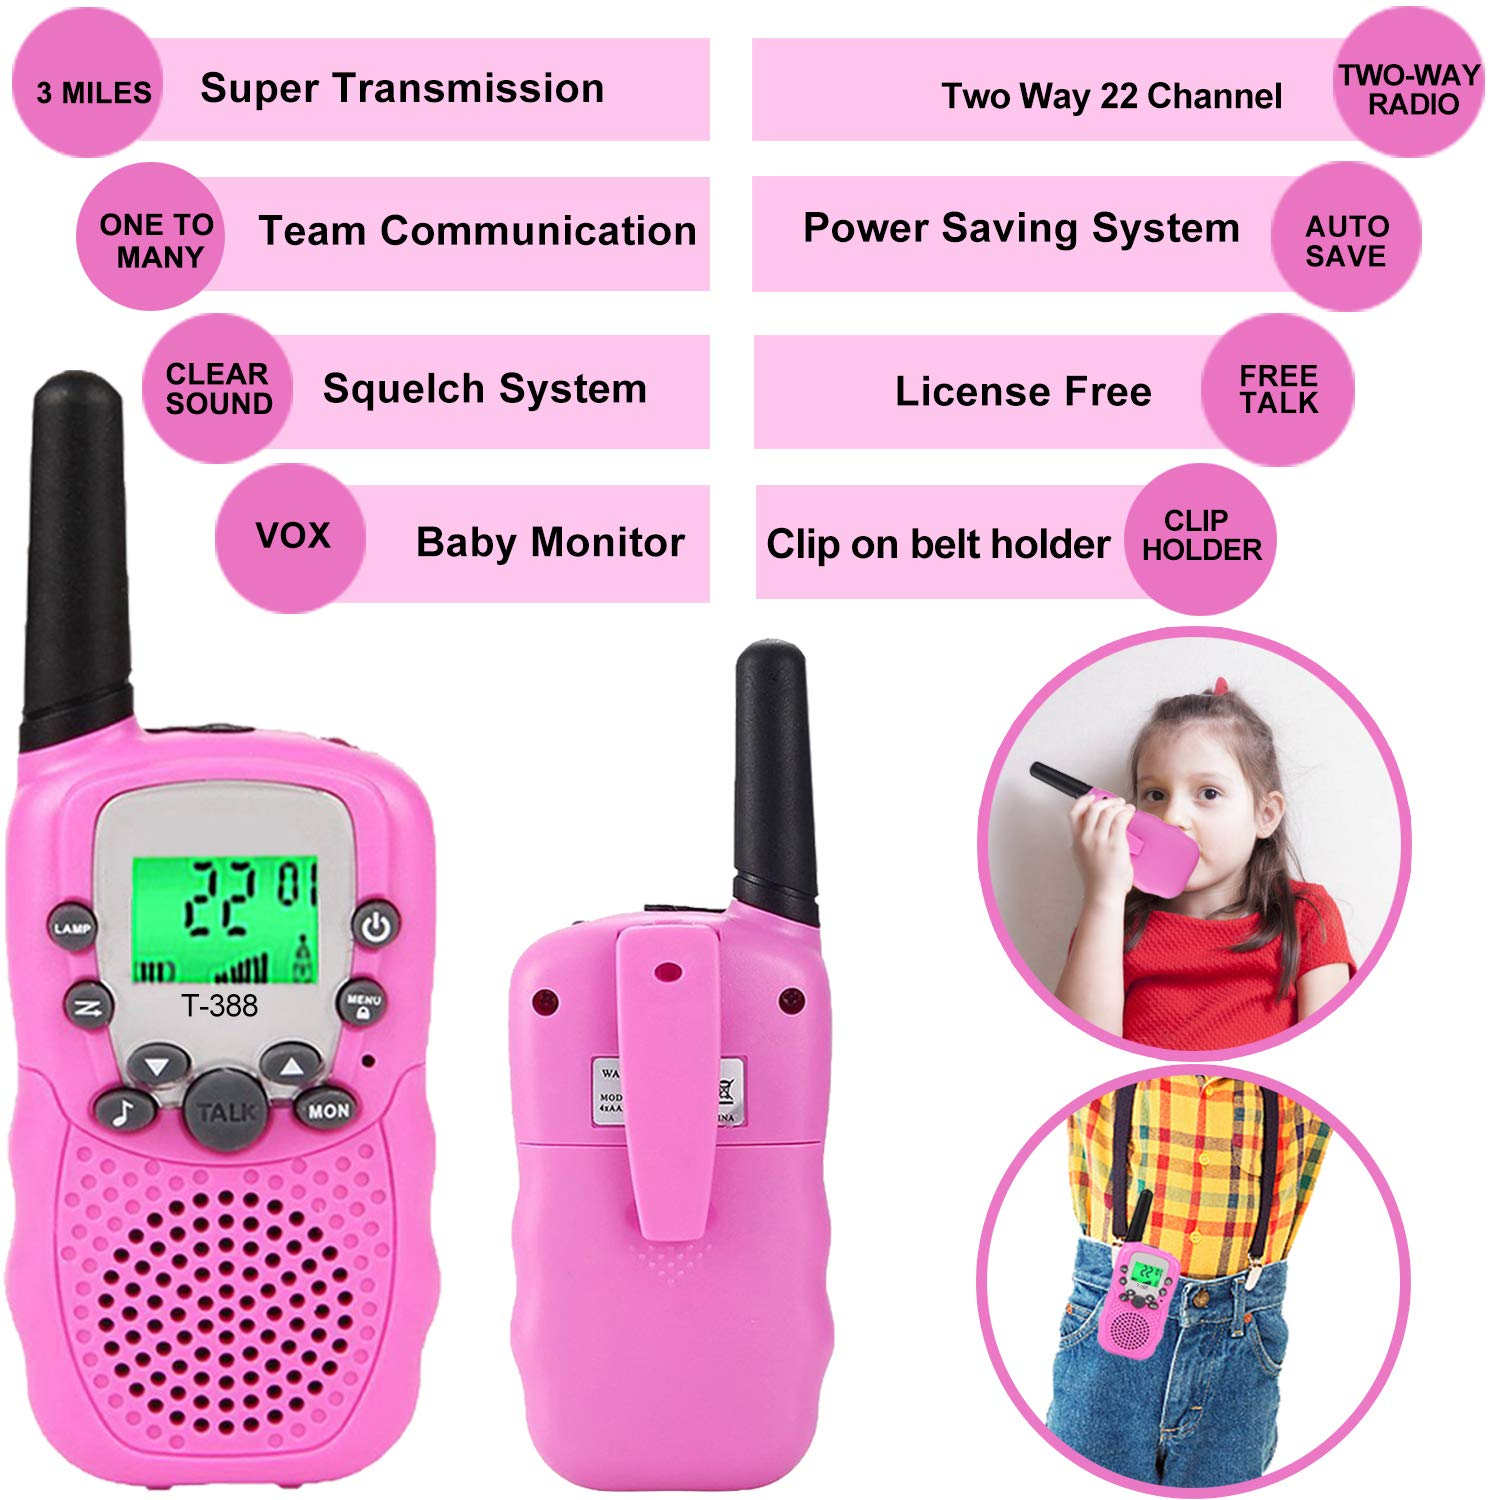 Kids Walkie Talkies Toys for 3-12 Year Old Boys Girls Toddlers, 4 Pack Walkie Talkies with 4 Earphones, 3 Mile Range 22 Channel Flashlight Two-Way Radio, Accessory for Outdoor Adventure Camping Game by iGeeKid (Image #2)